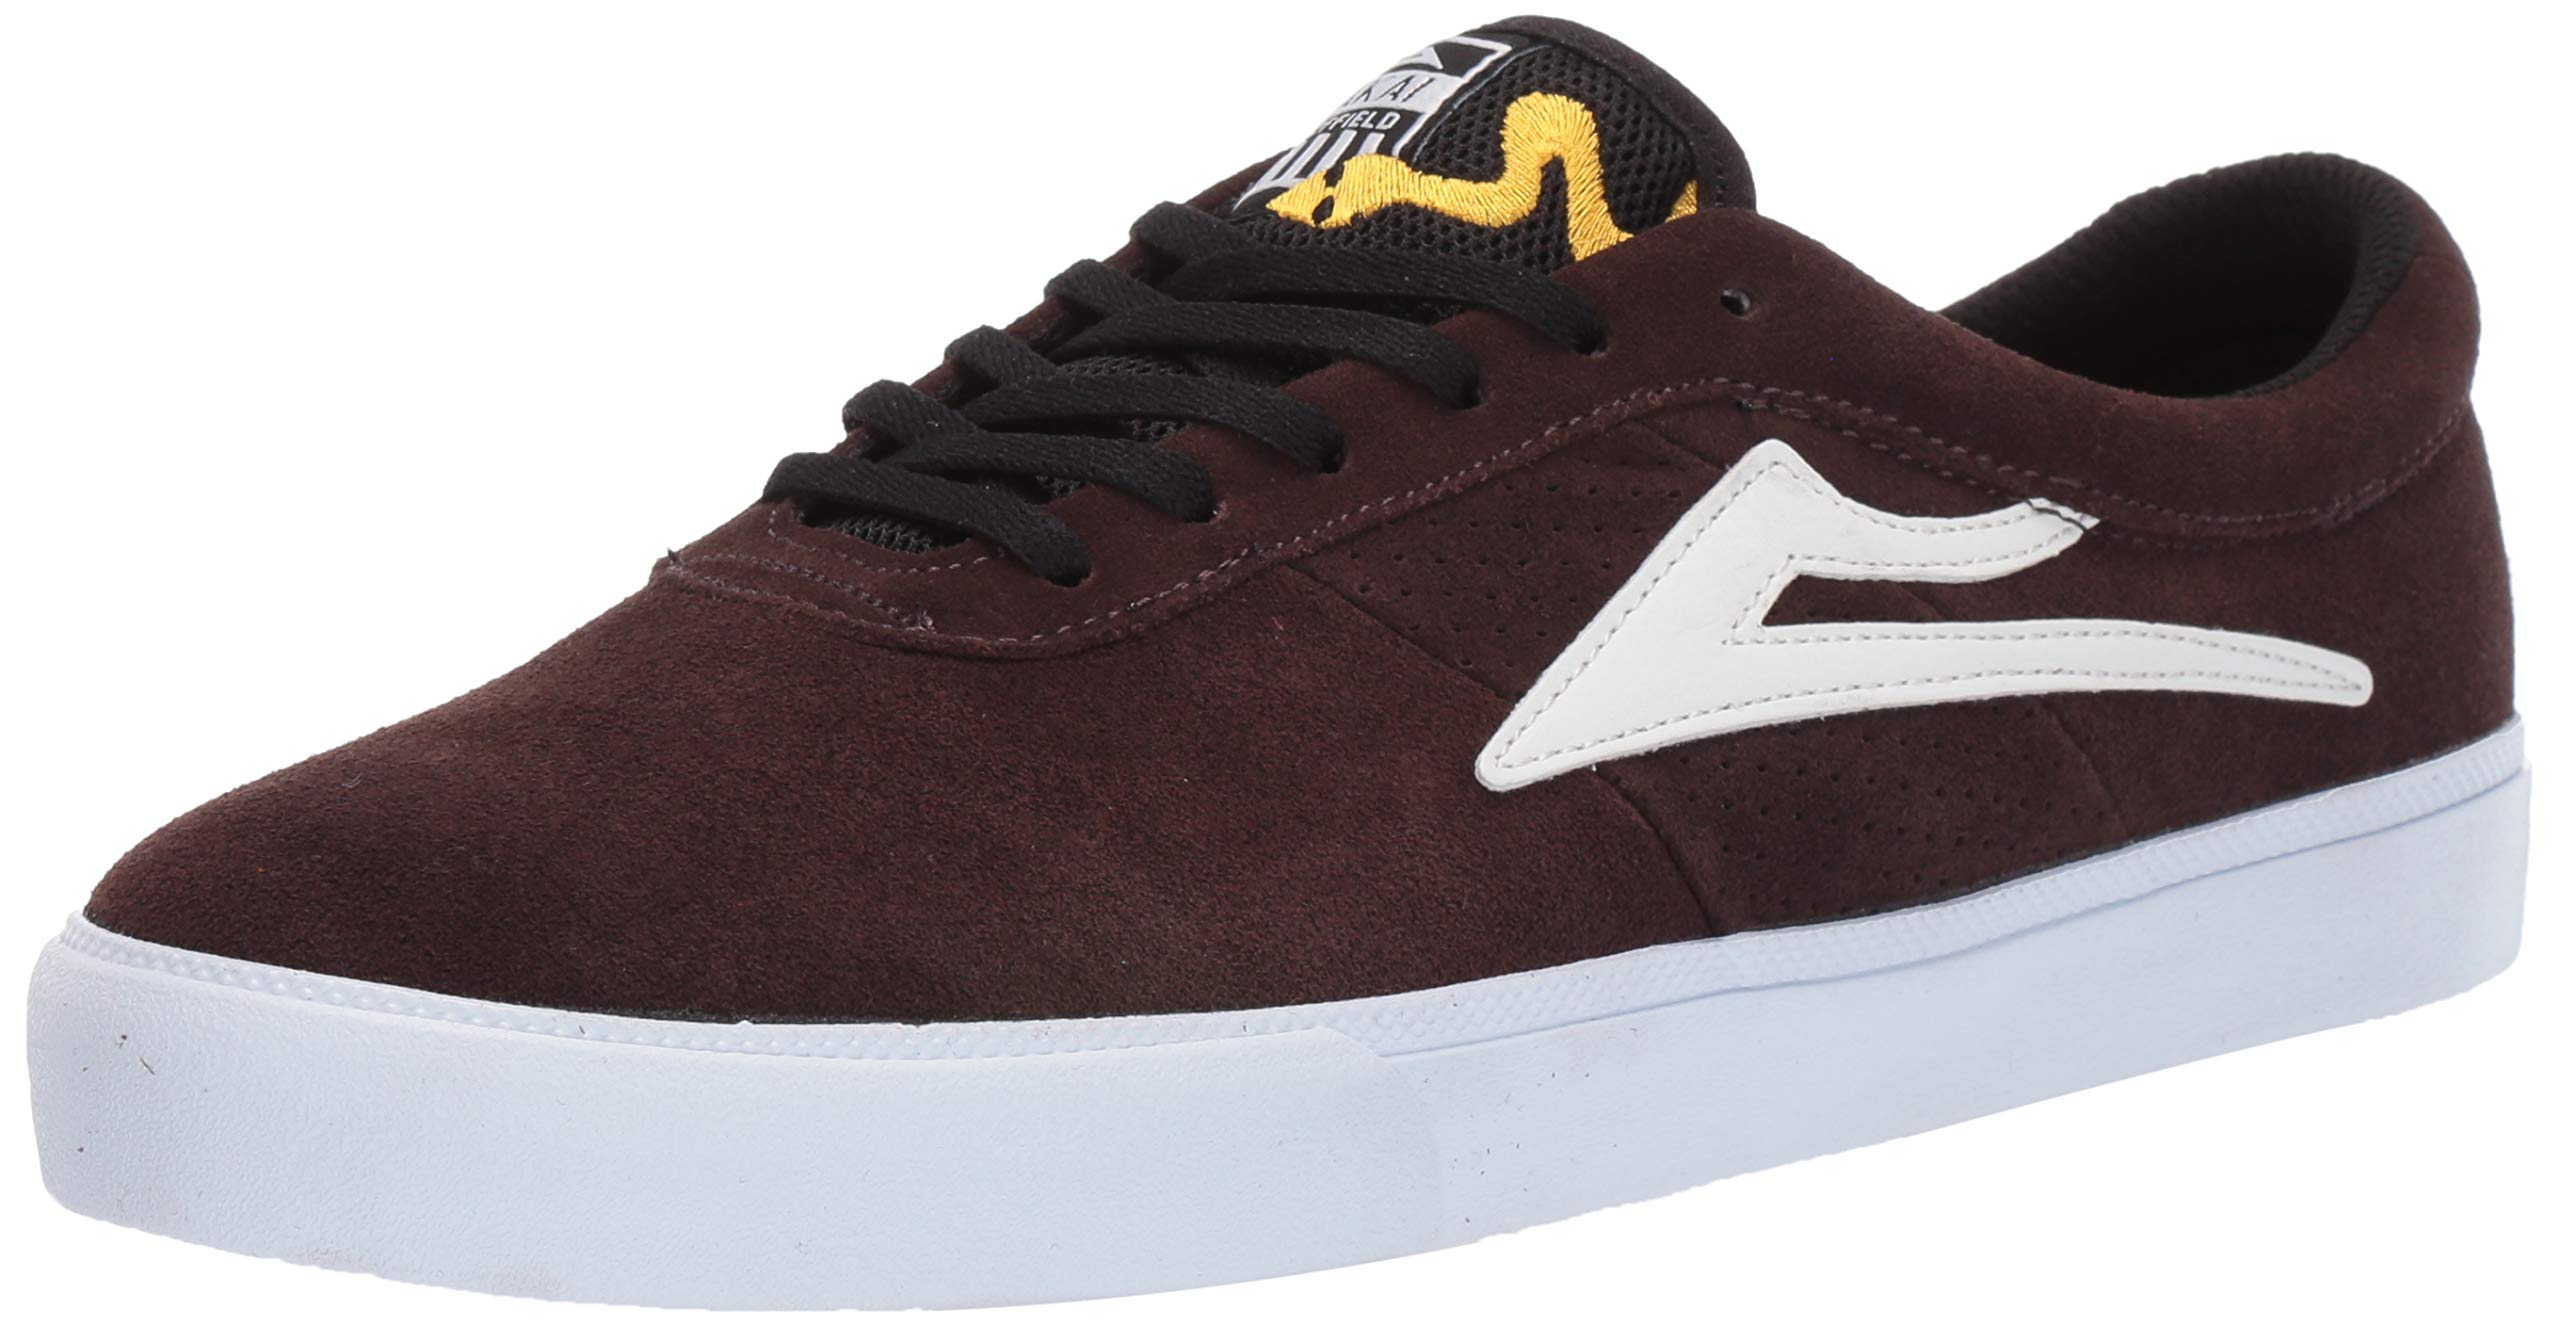 Lakai Footwear Sheffield Simon Chocolate SuedeSize 7 Tennis Shoe Suede, 7 Standard US Width US by Lakai